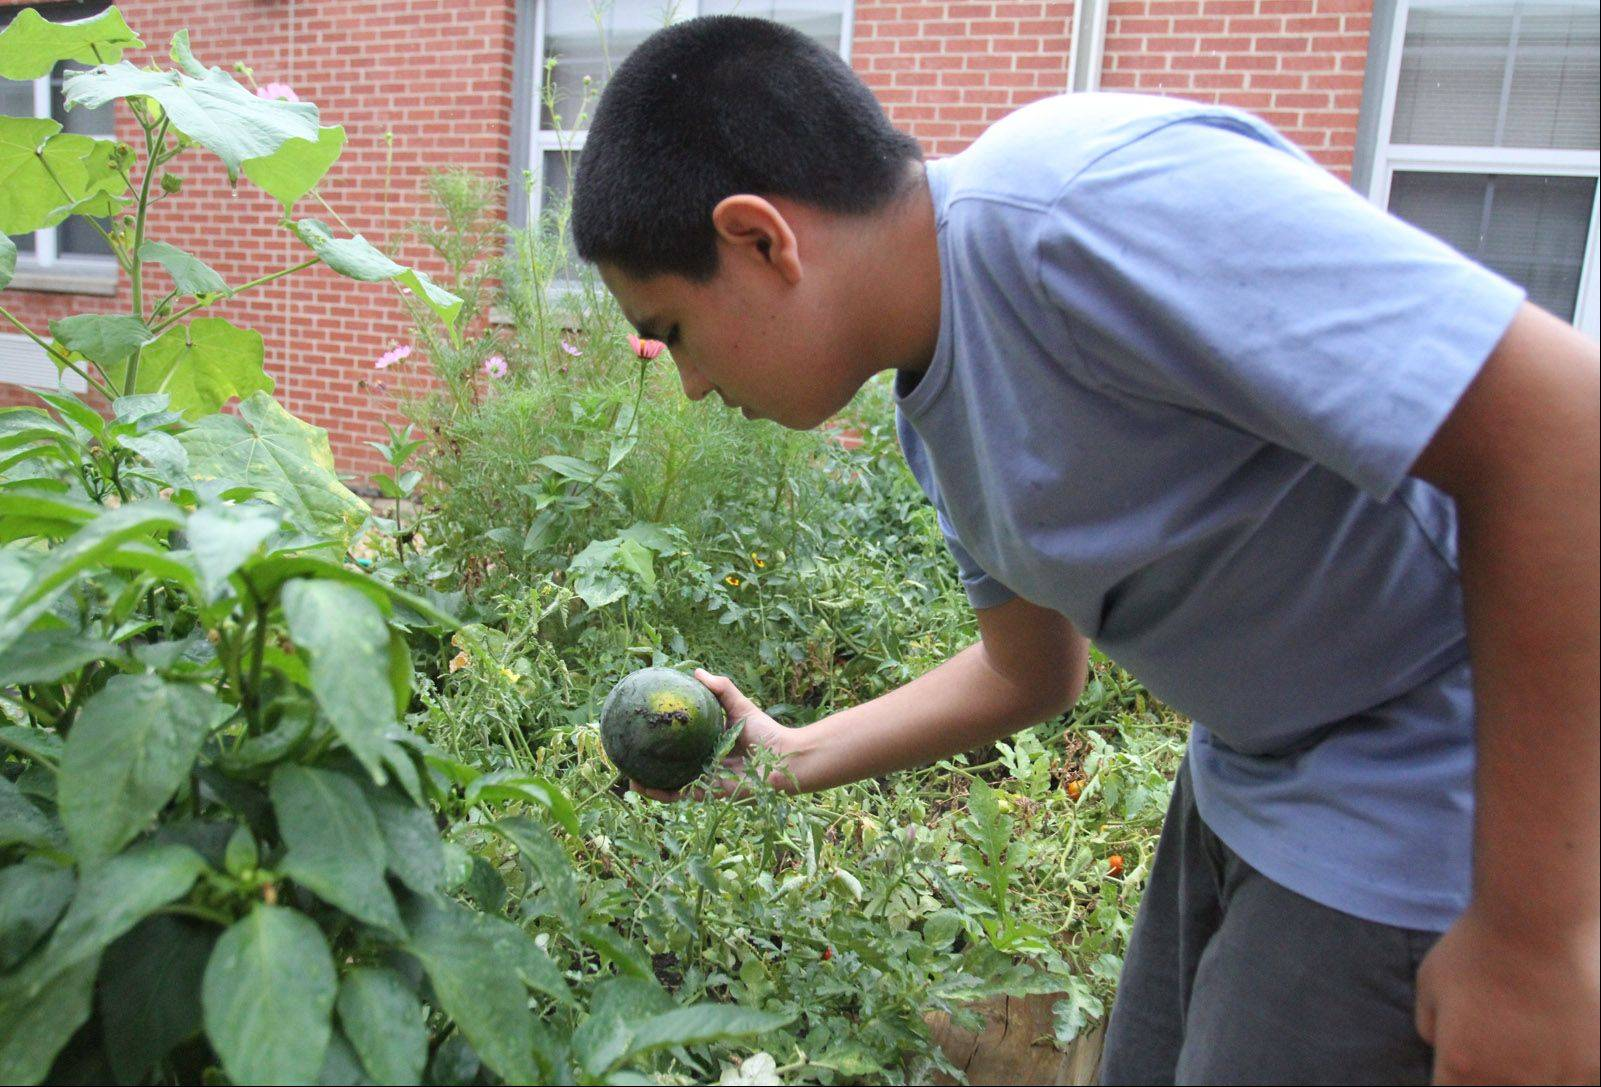 Eighth-grader Luis Rodriguez checks a watermelon at London Middle School's vegetable garden. Summer school students at London have been watering and caring for the plants.